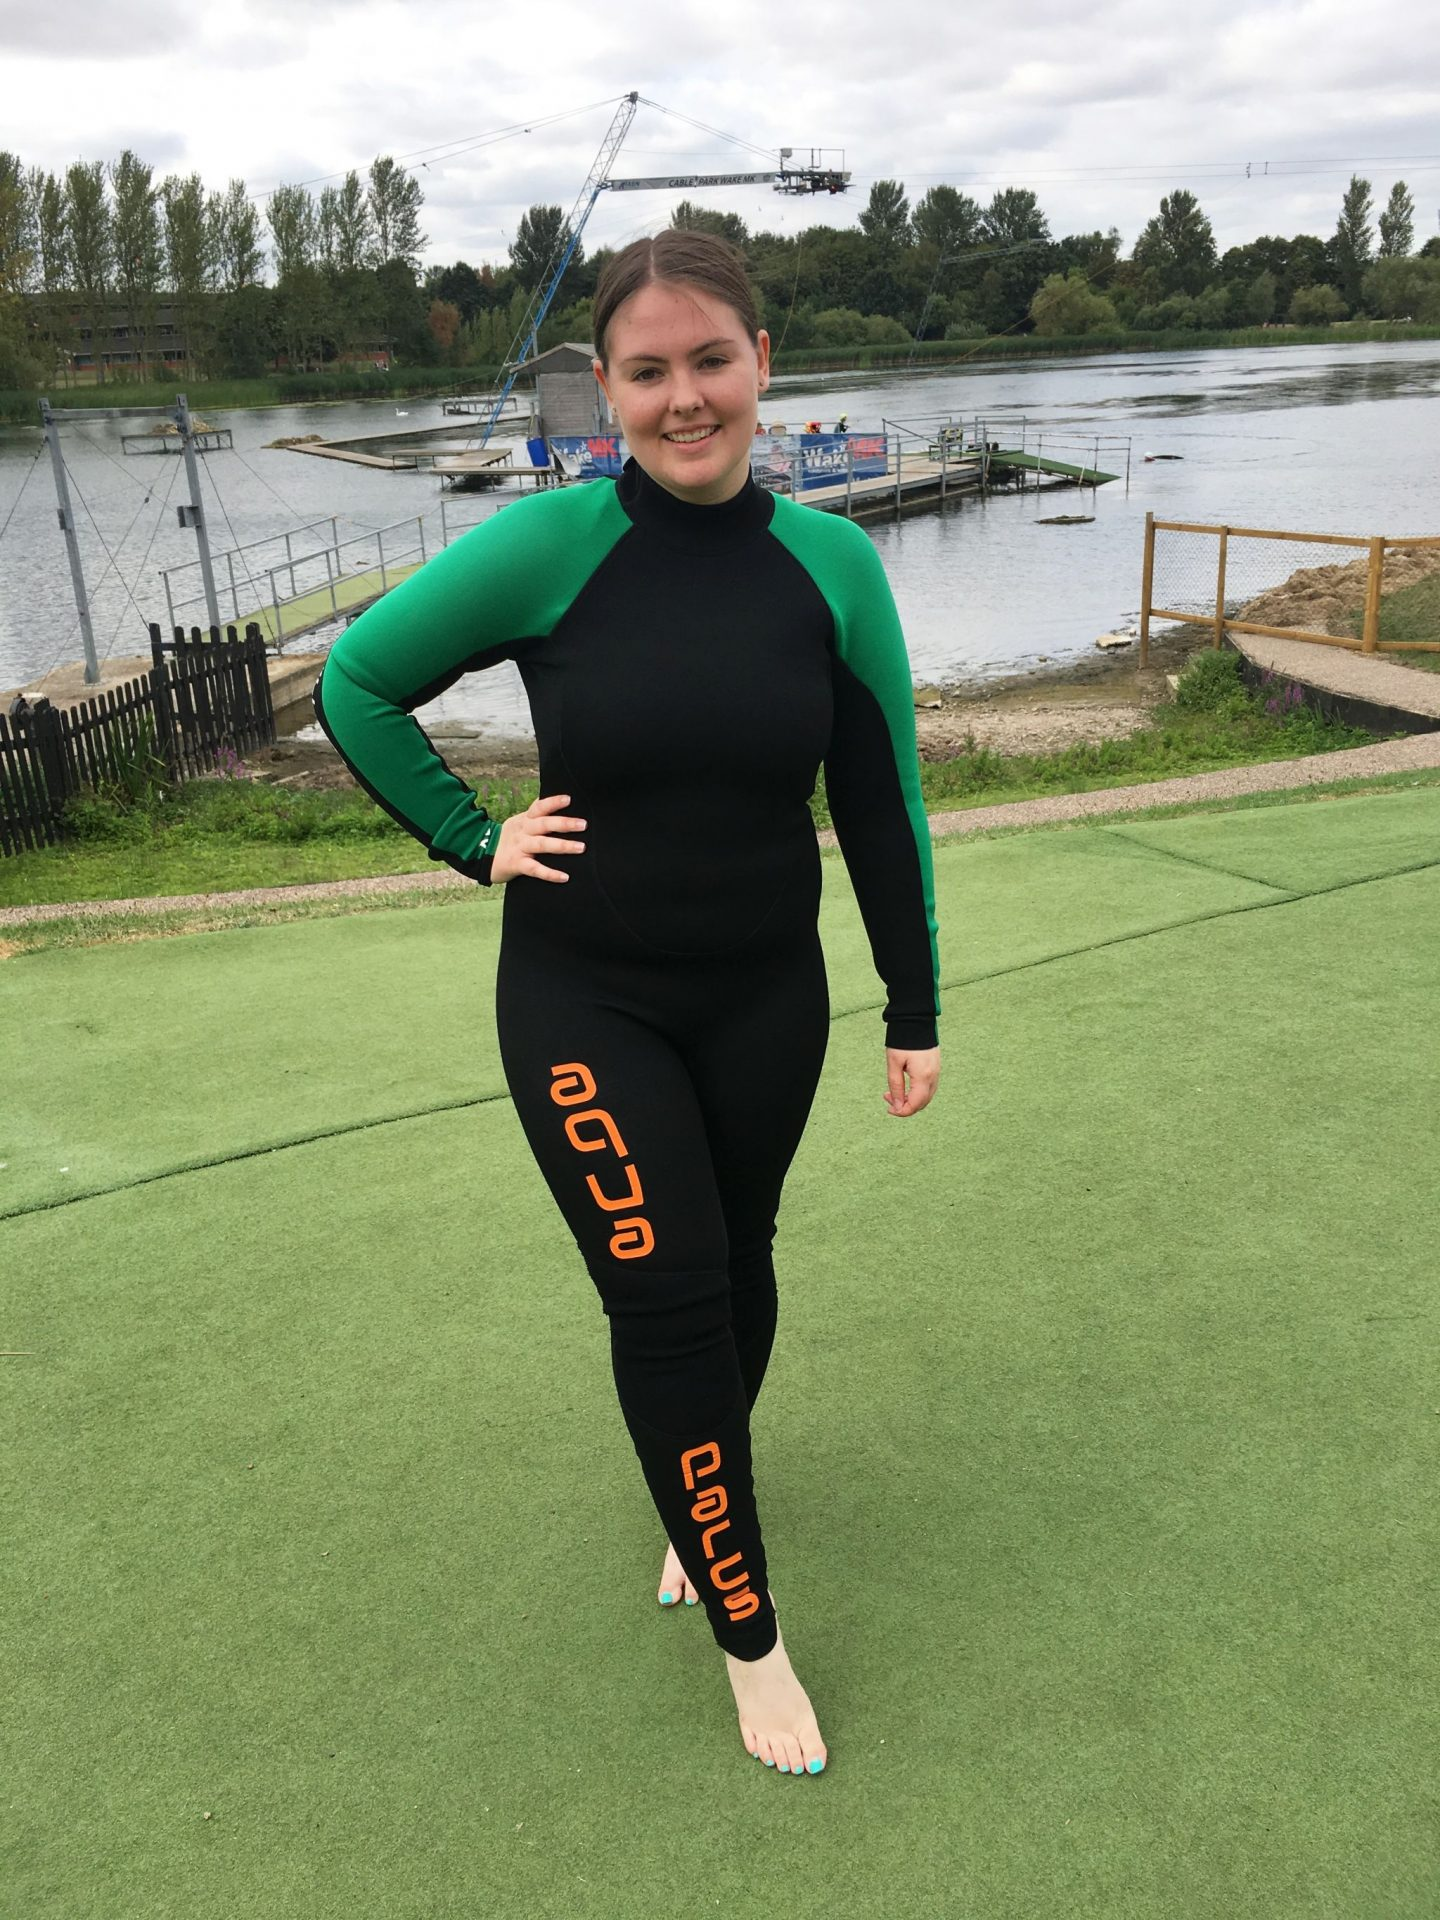 Me in a wesuit at Aqua Parcs Willen Lake Milton Keynes